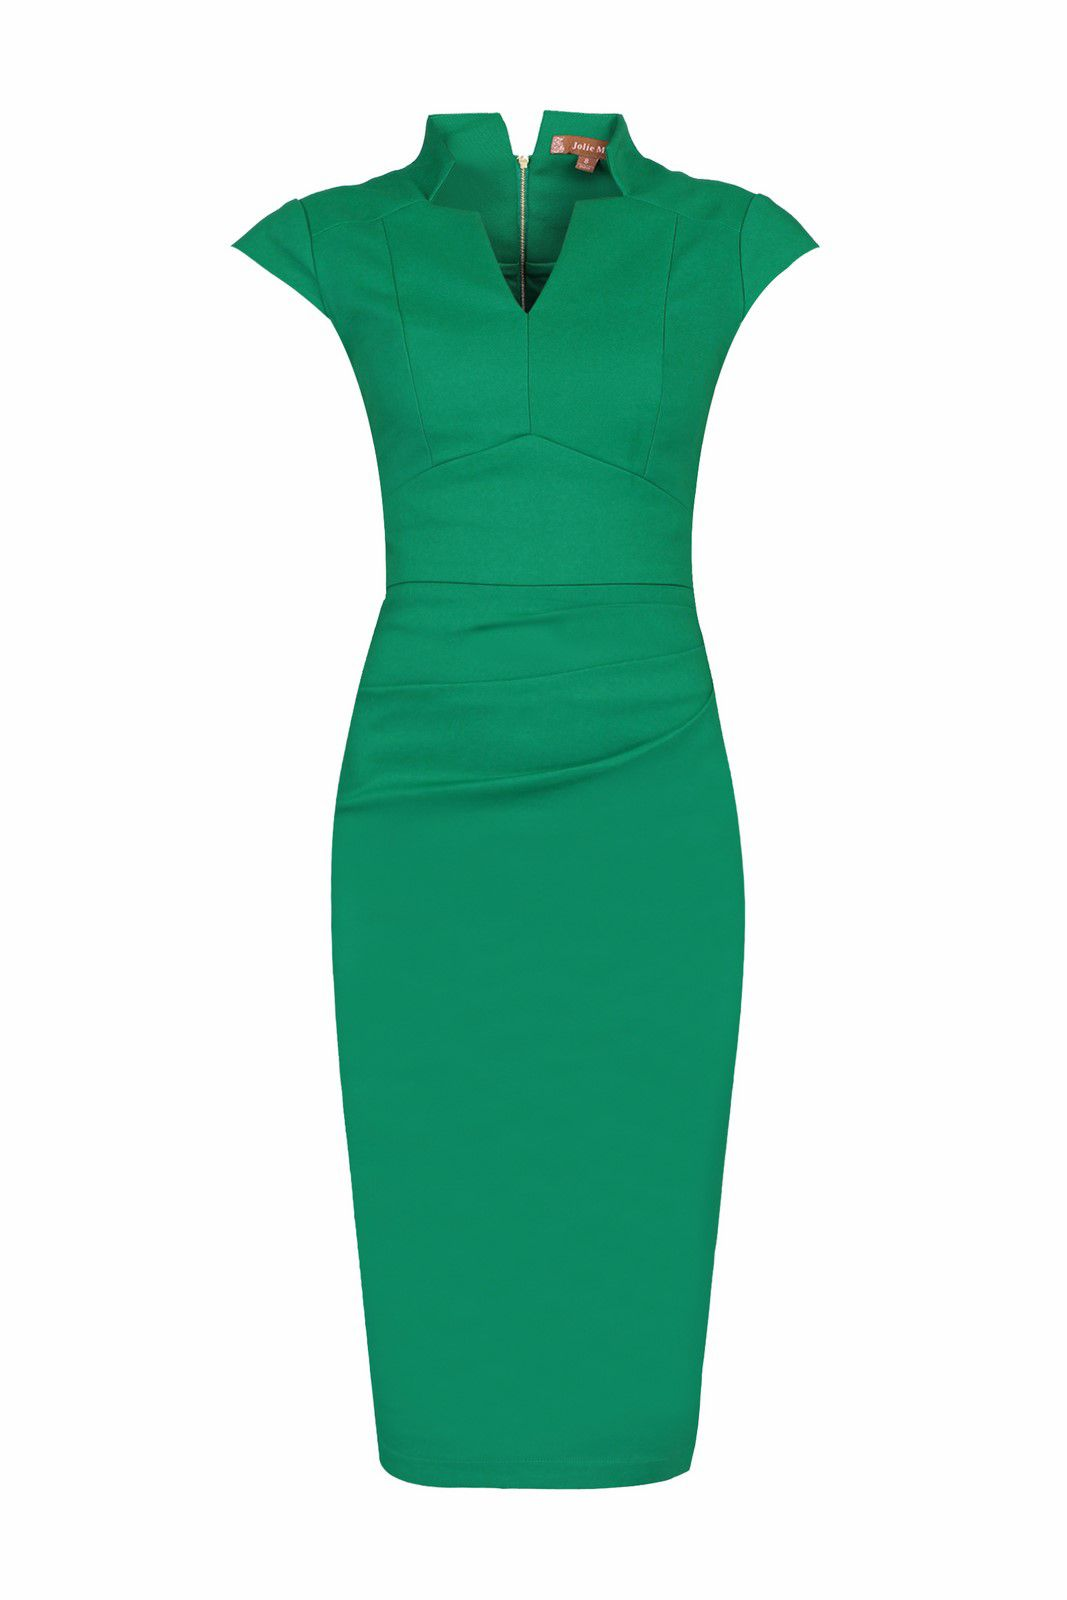 Jolie Moi High Collar V Neck Ruched Dress, Green